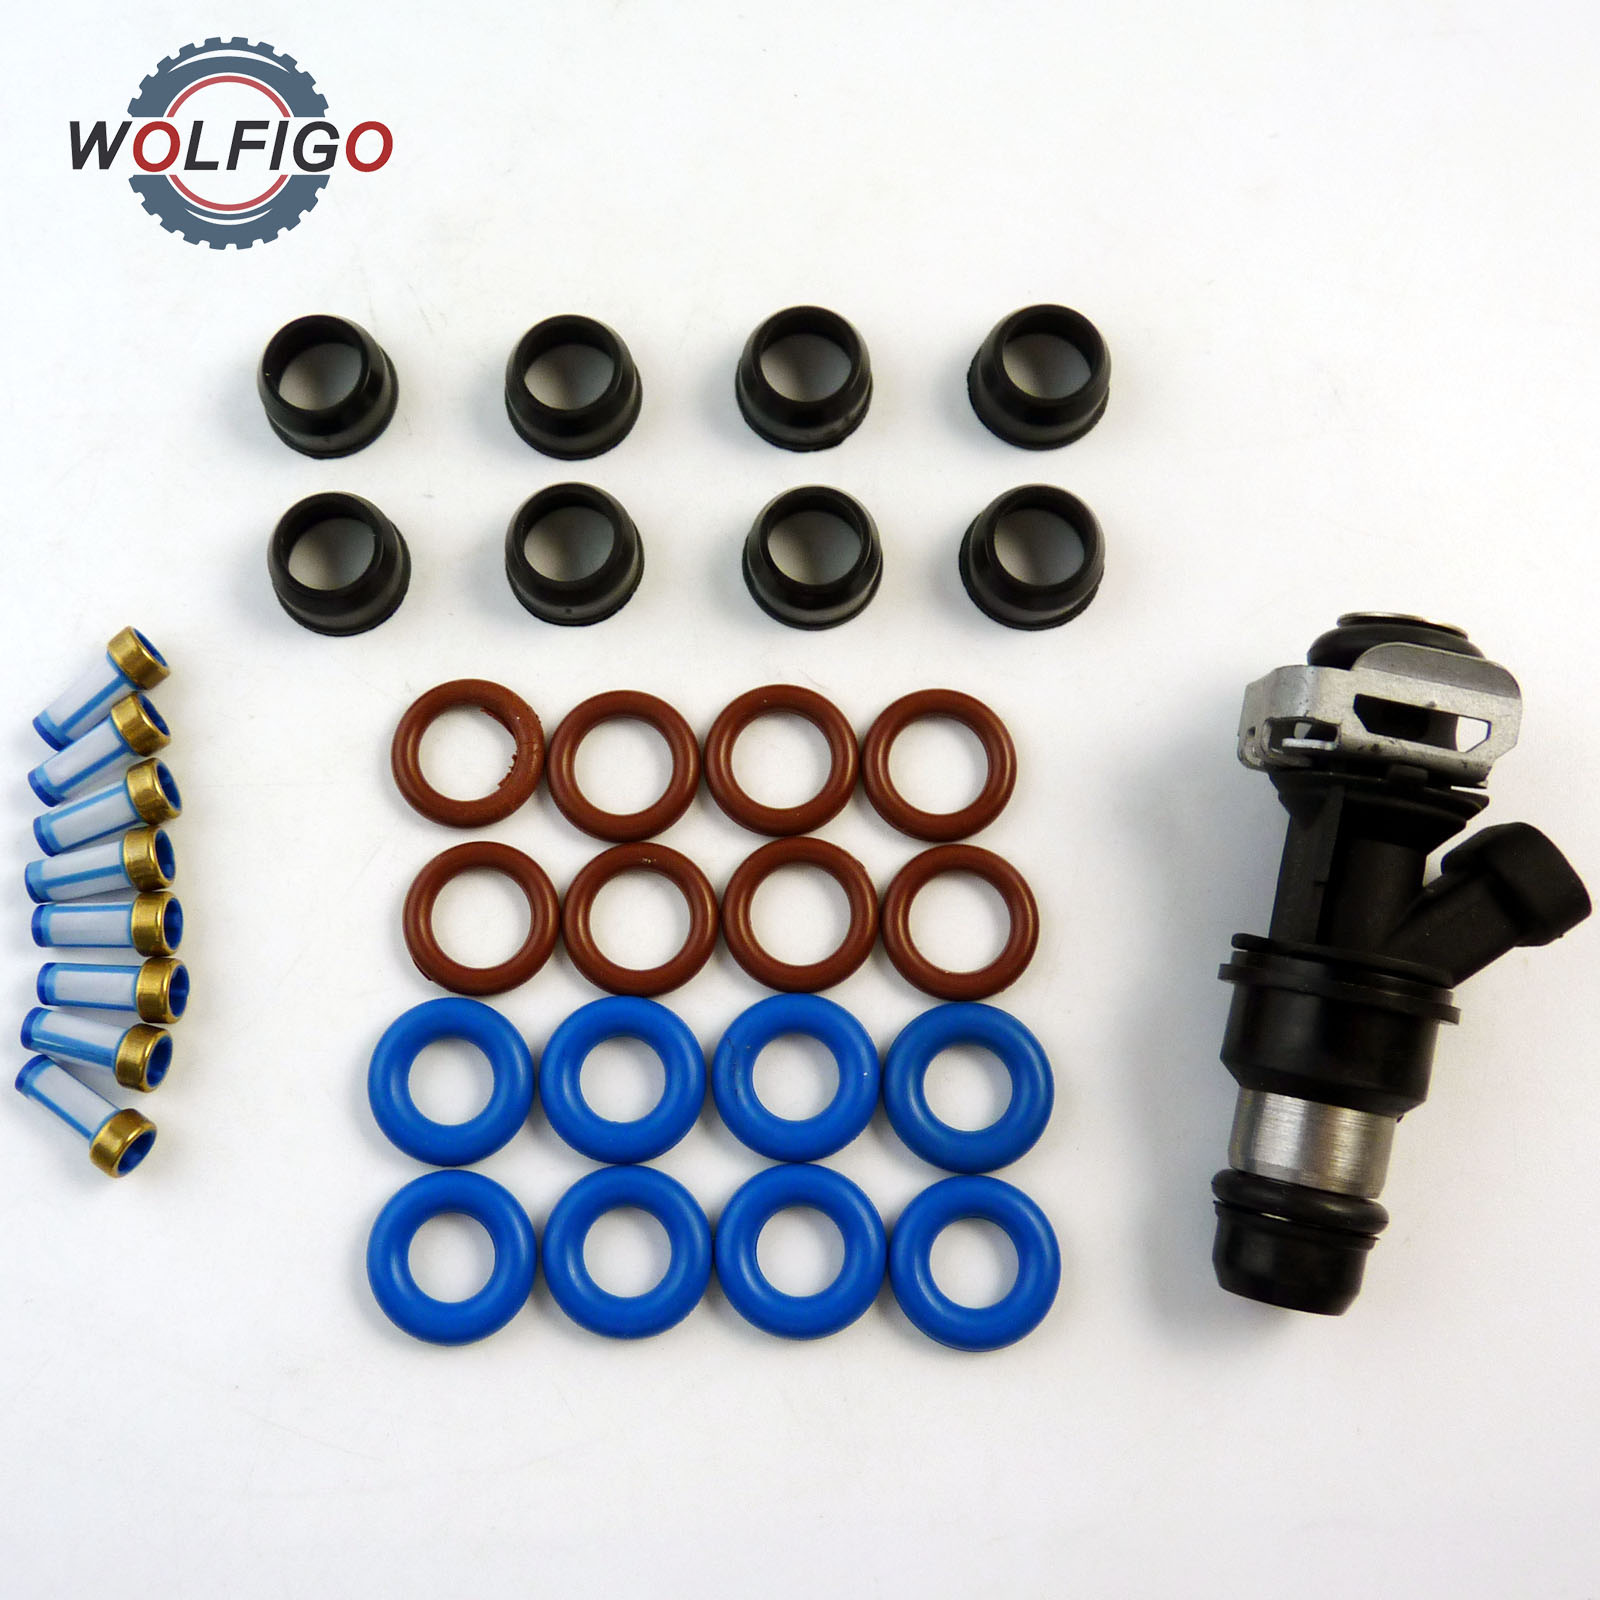 hight resolution of wolfigo fuel injector rebuild kit o rings filters 25317628 17113553 8171136980 for chevrolet truck pintle v8 chevy gmc 4 8 in fuel inject